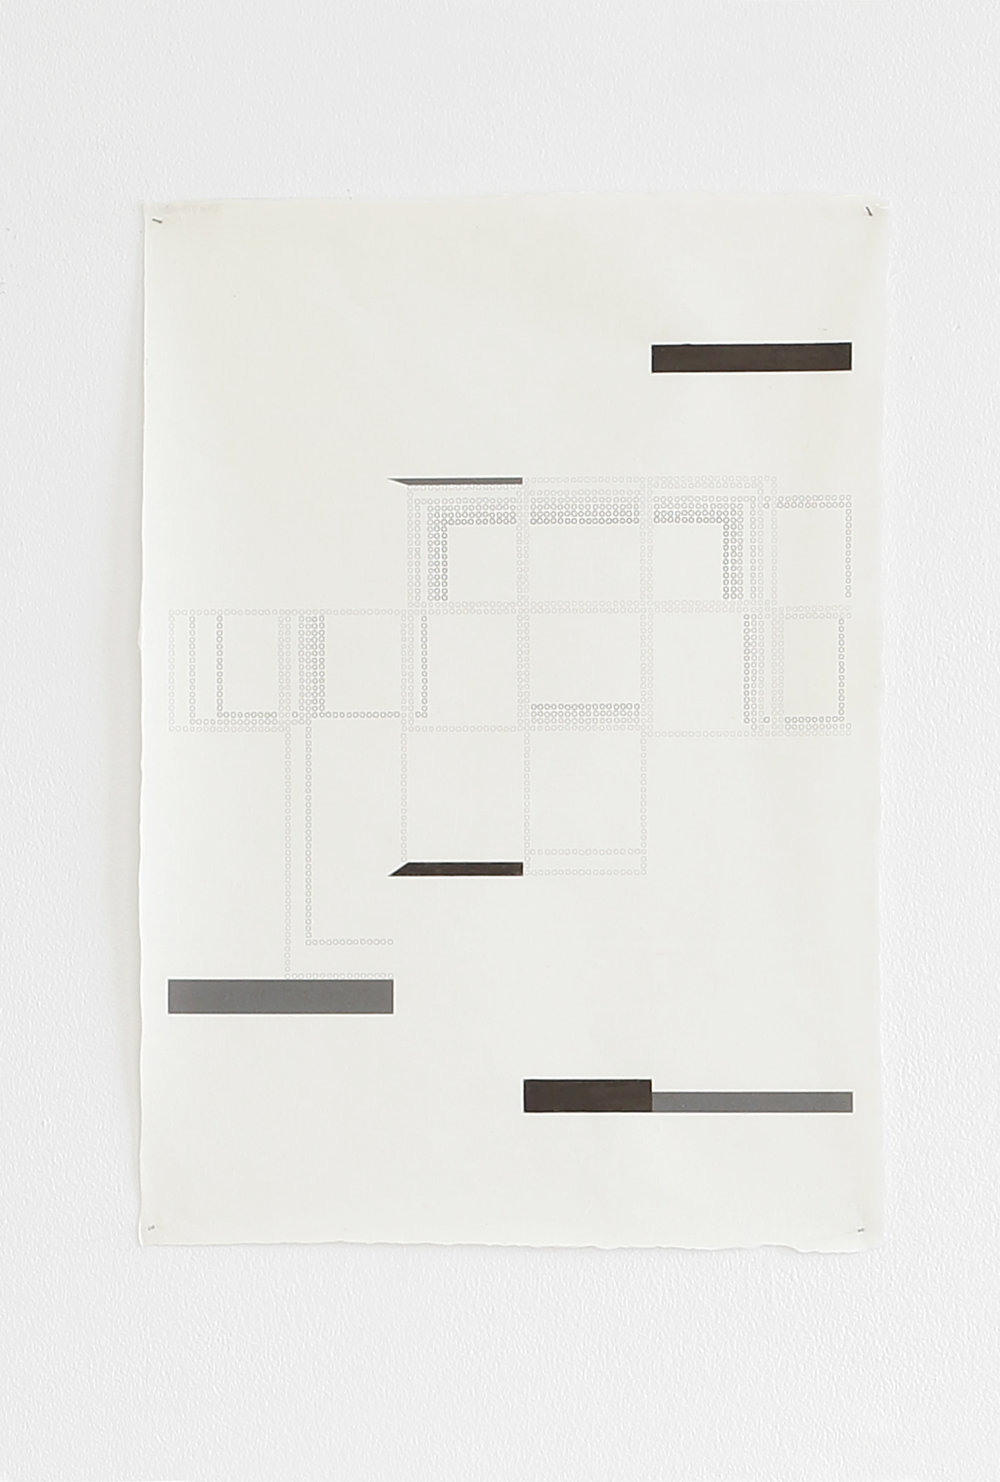 Azadeh Gholizadeh ,  Repetition Figure (1703) , 2017, graphite, print on rice paper